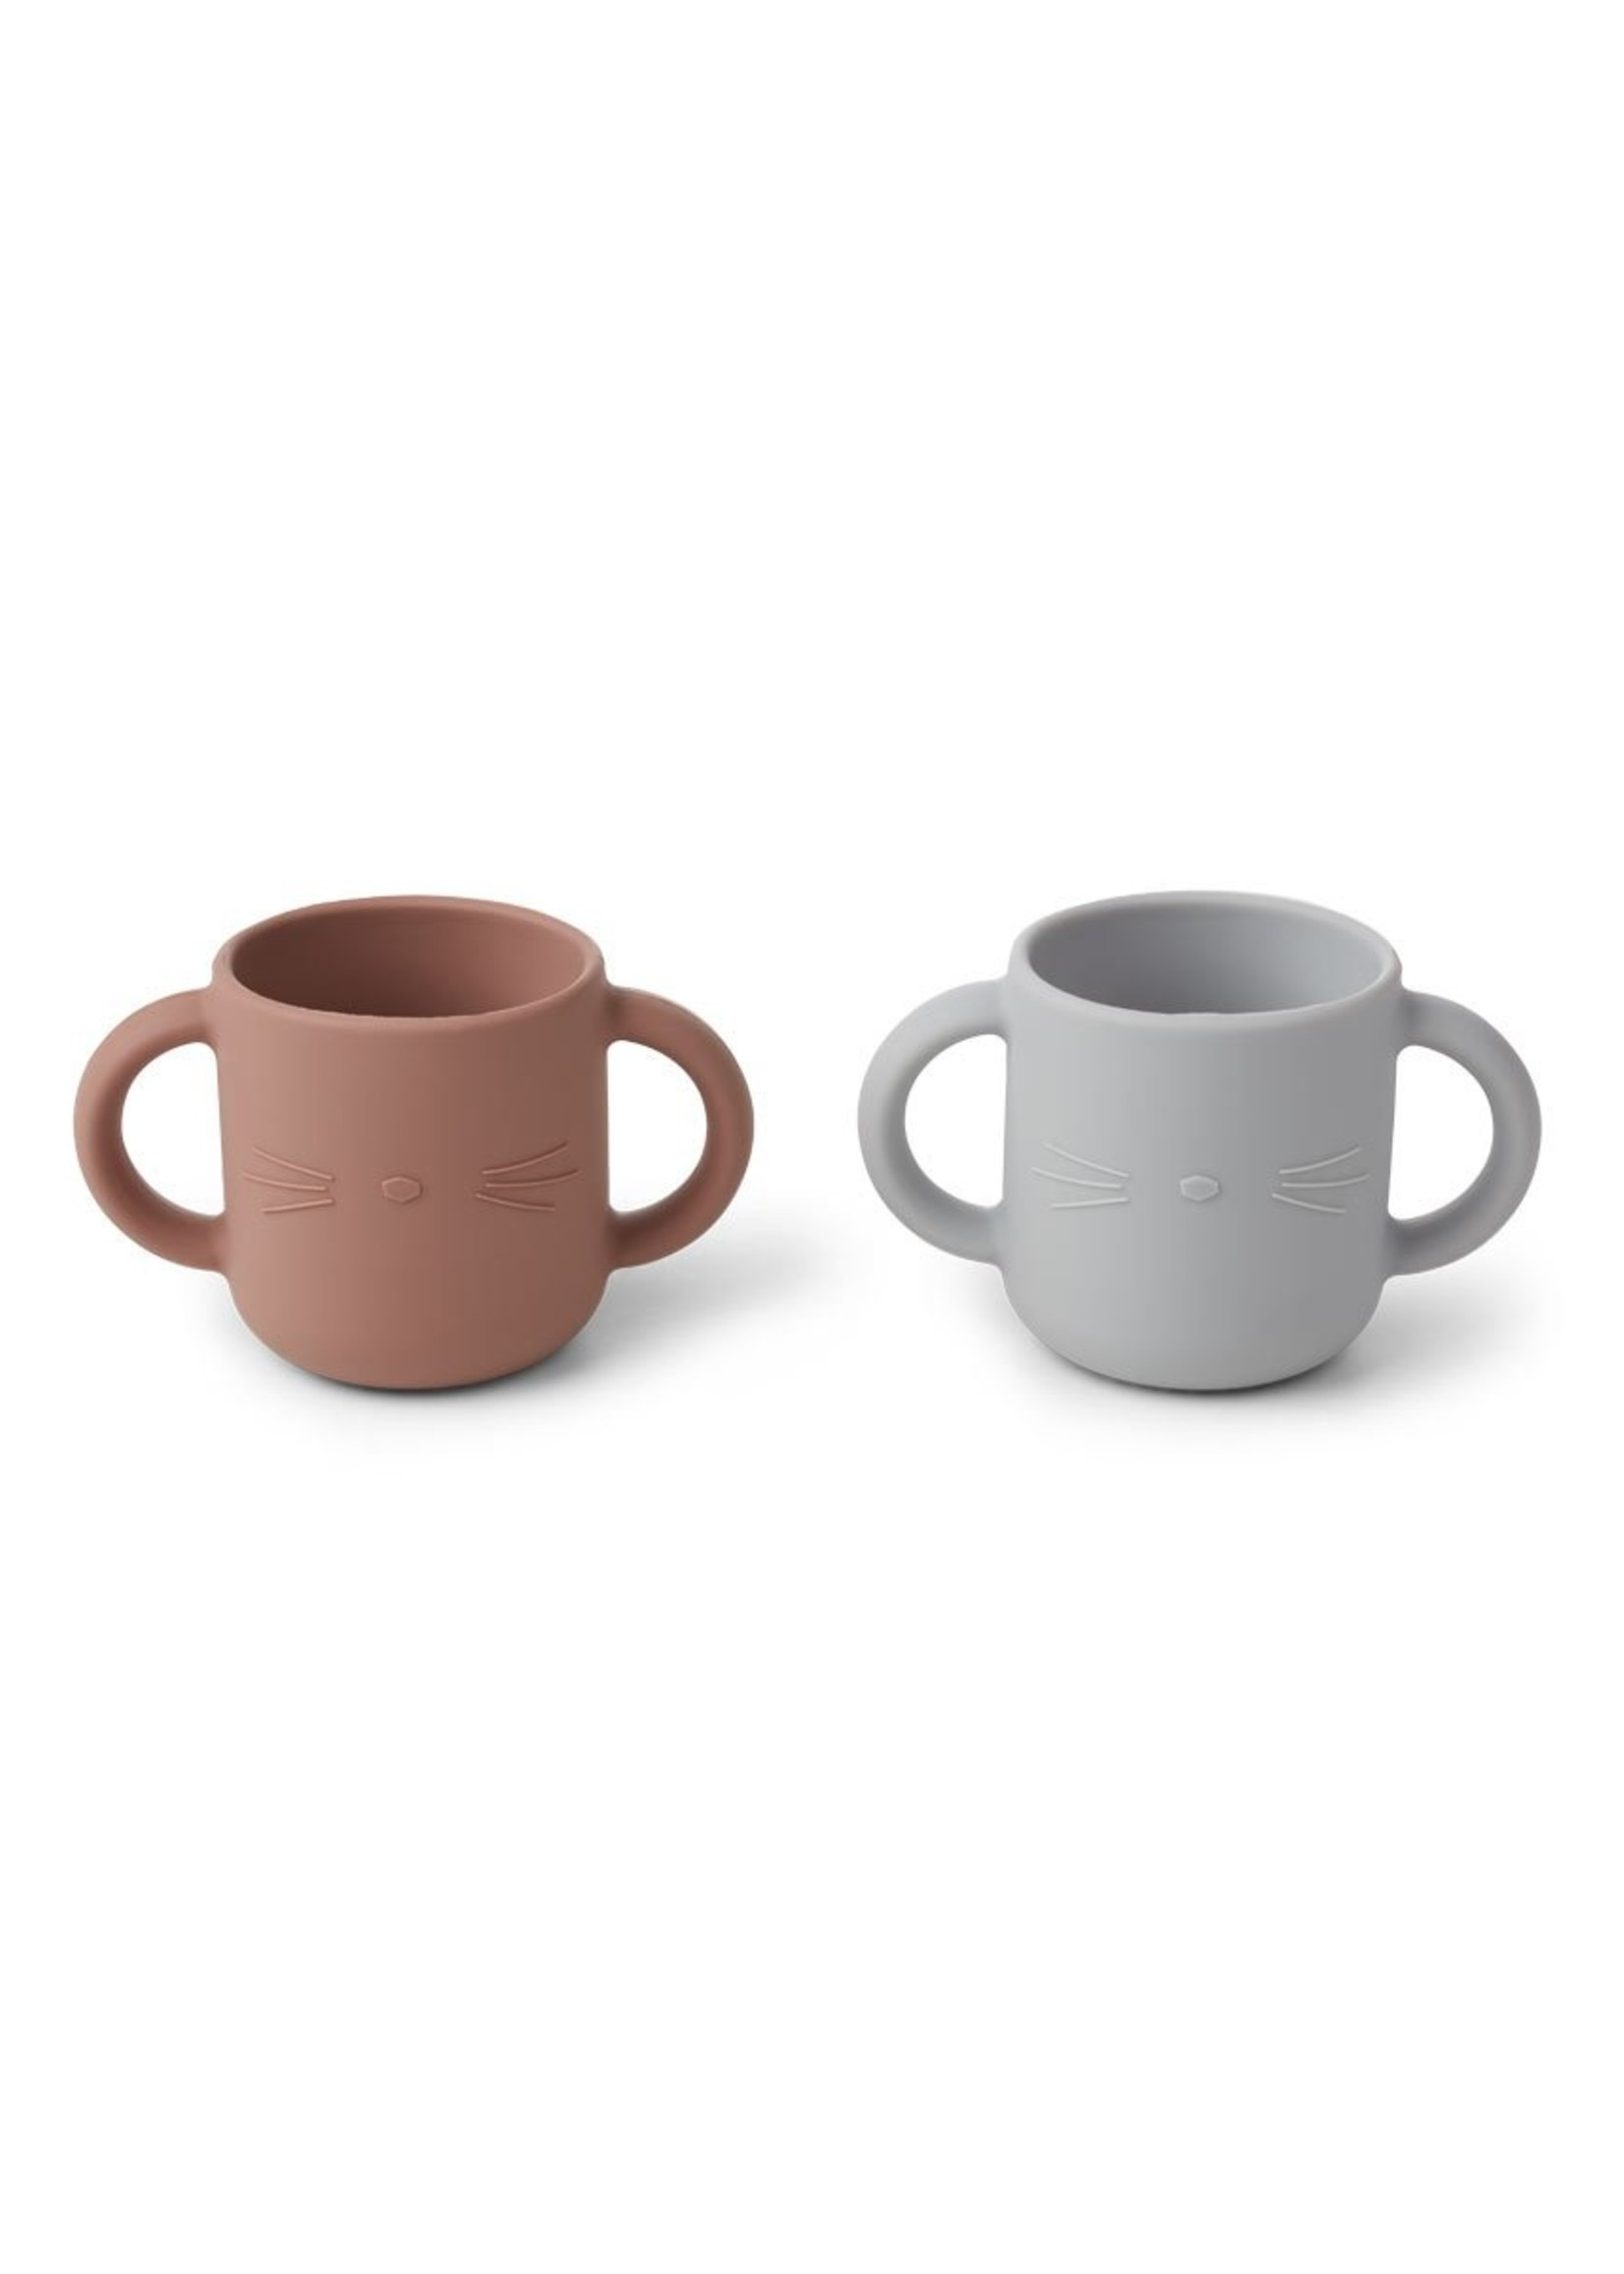 liewood Liewood-SS21 LW14155 Gene silicone cup - 2 pack